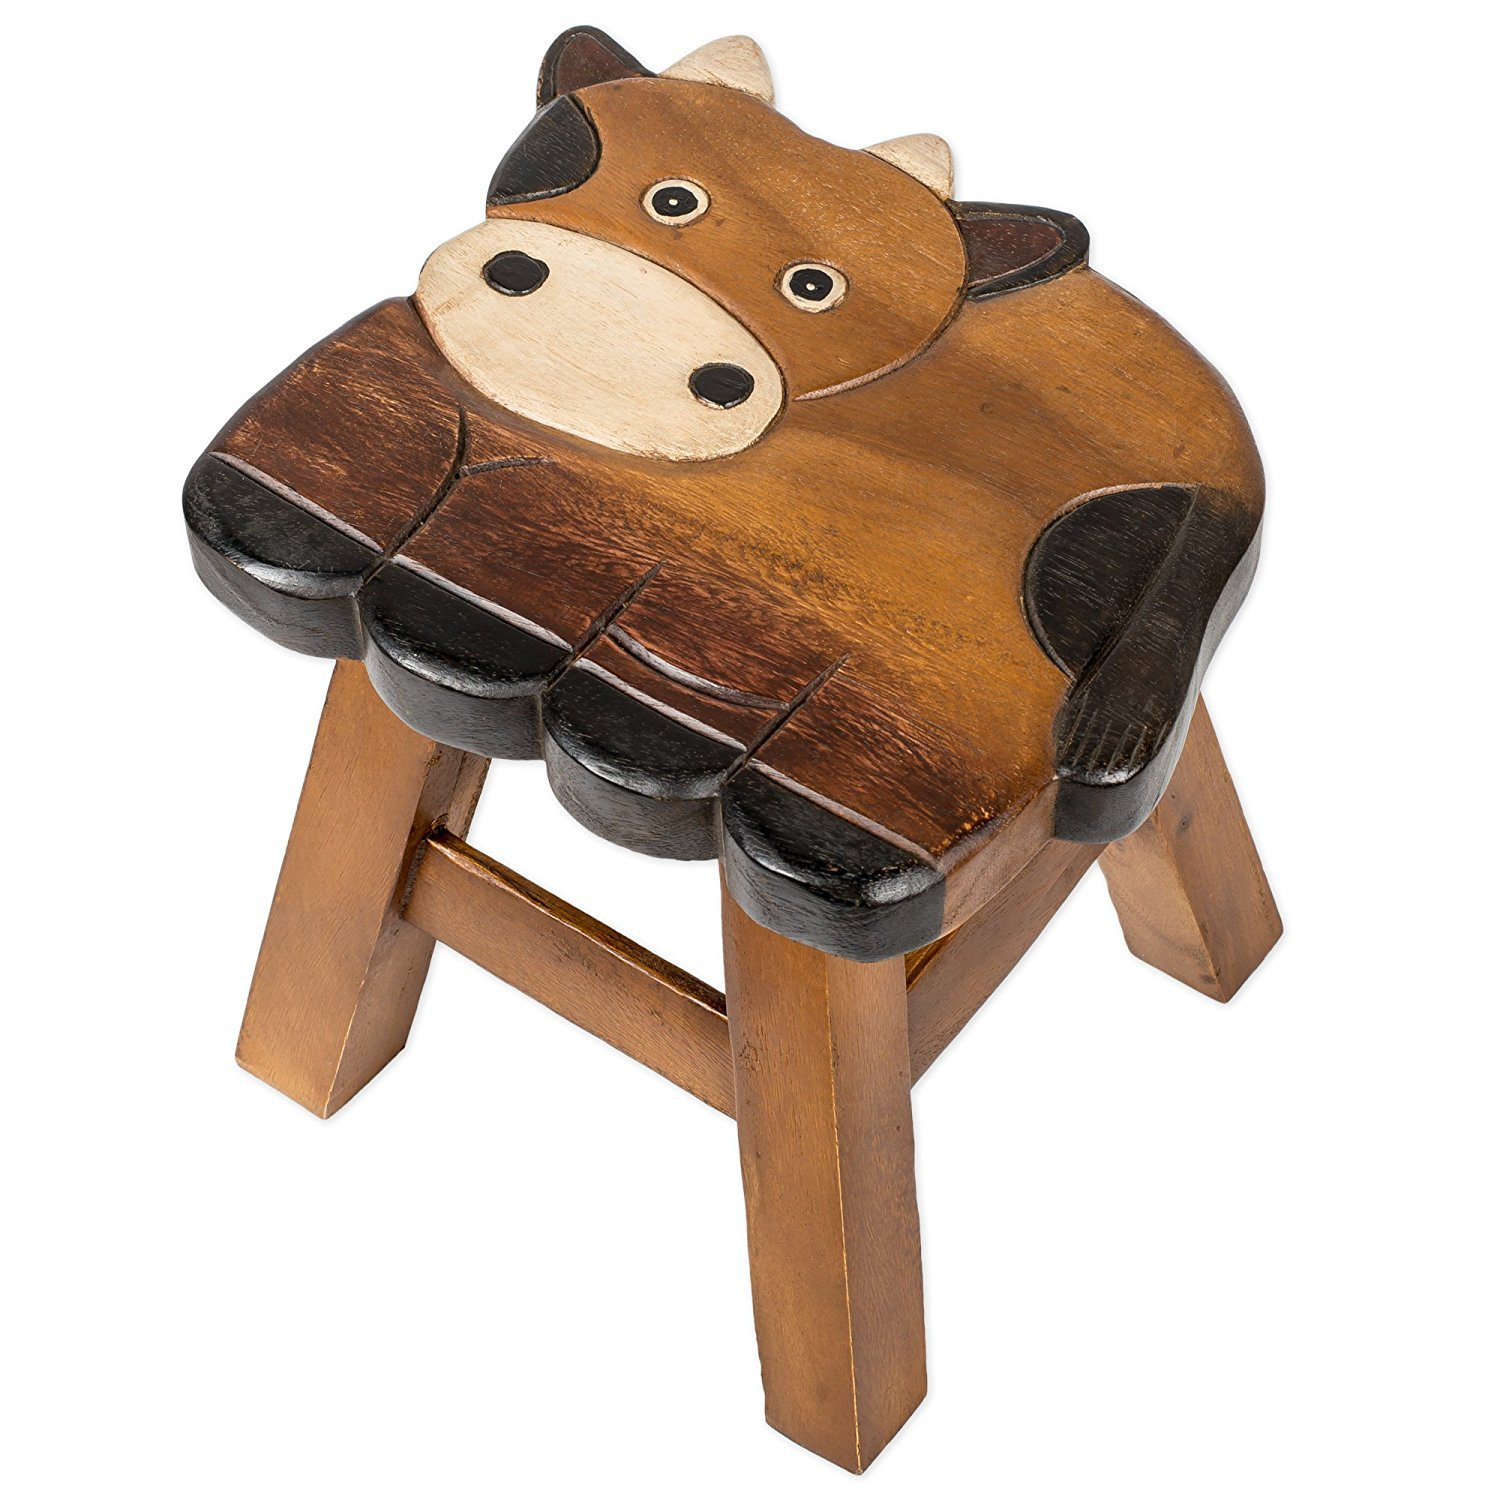 Cow Design Hand Carved Acacia Hardwood Decorative Short Stool Sea Island Imports Inc. COMINHKPR104399